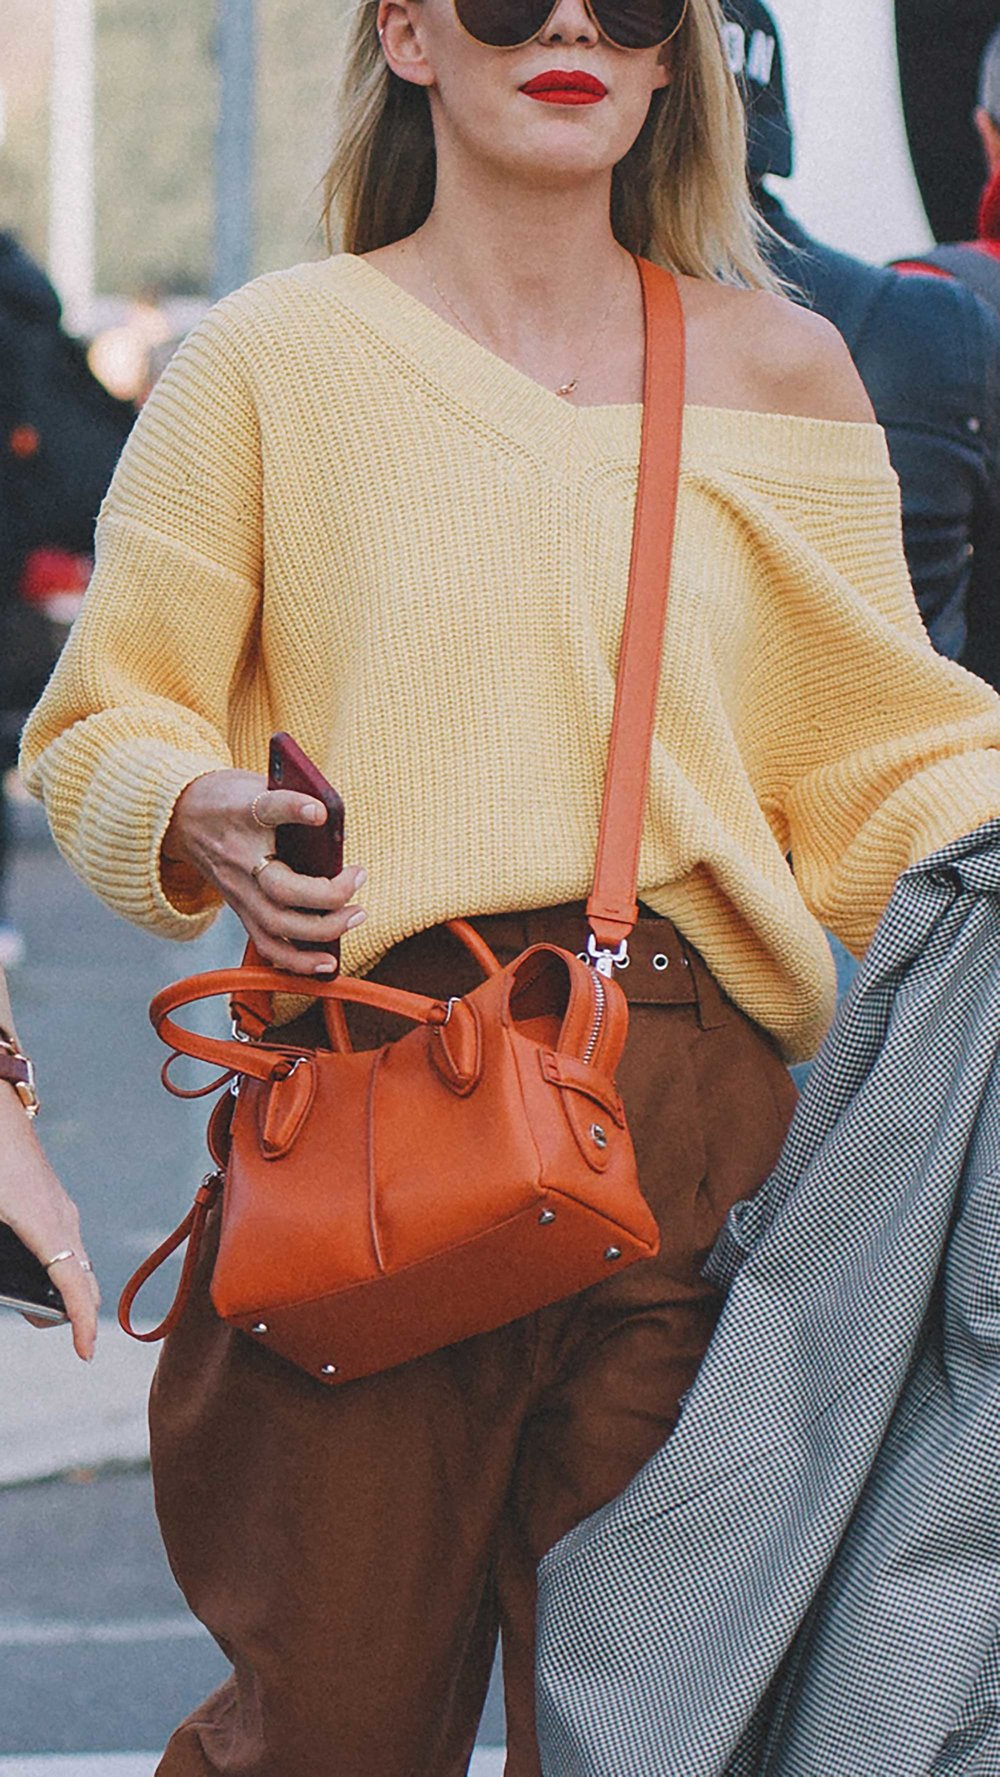 est outfits of Milan Fashion Week street style day two MFW FW19 28.jpg